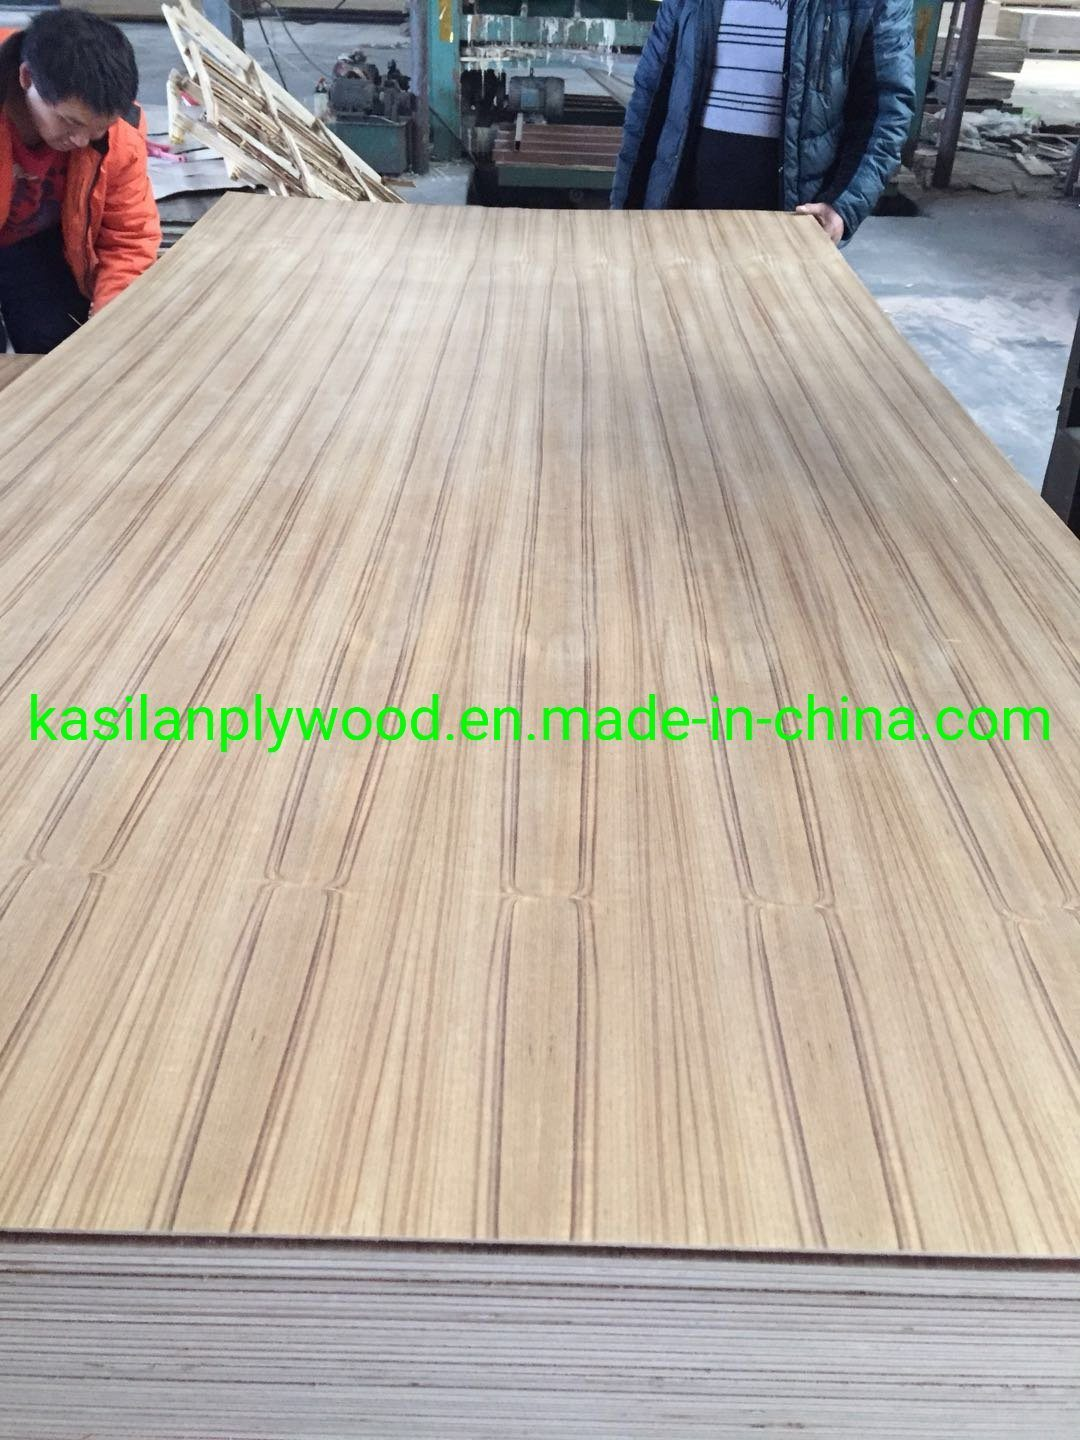 China Marine Plywood Fancy Plywood With Teak Wood For Furniture Photos Pictures Made In China Com